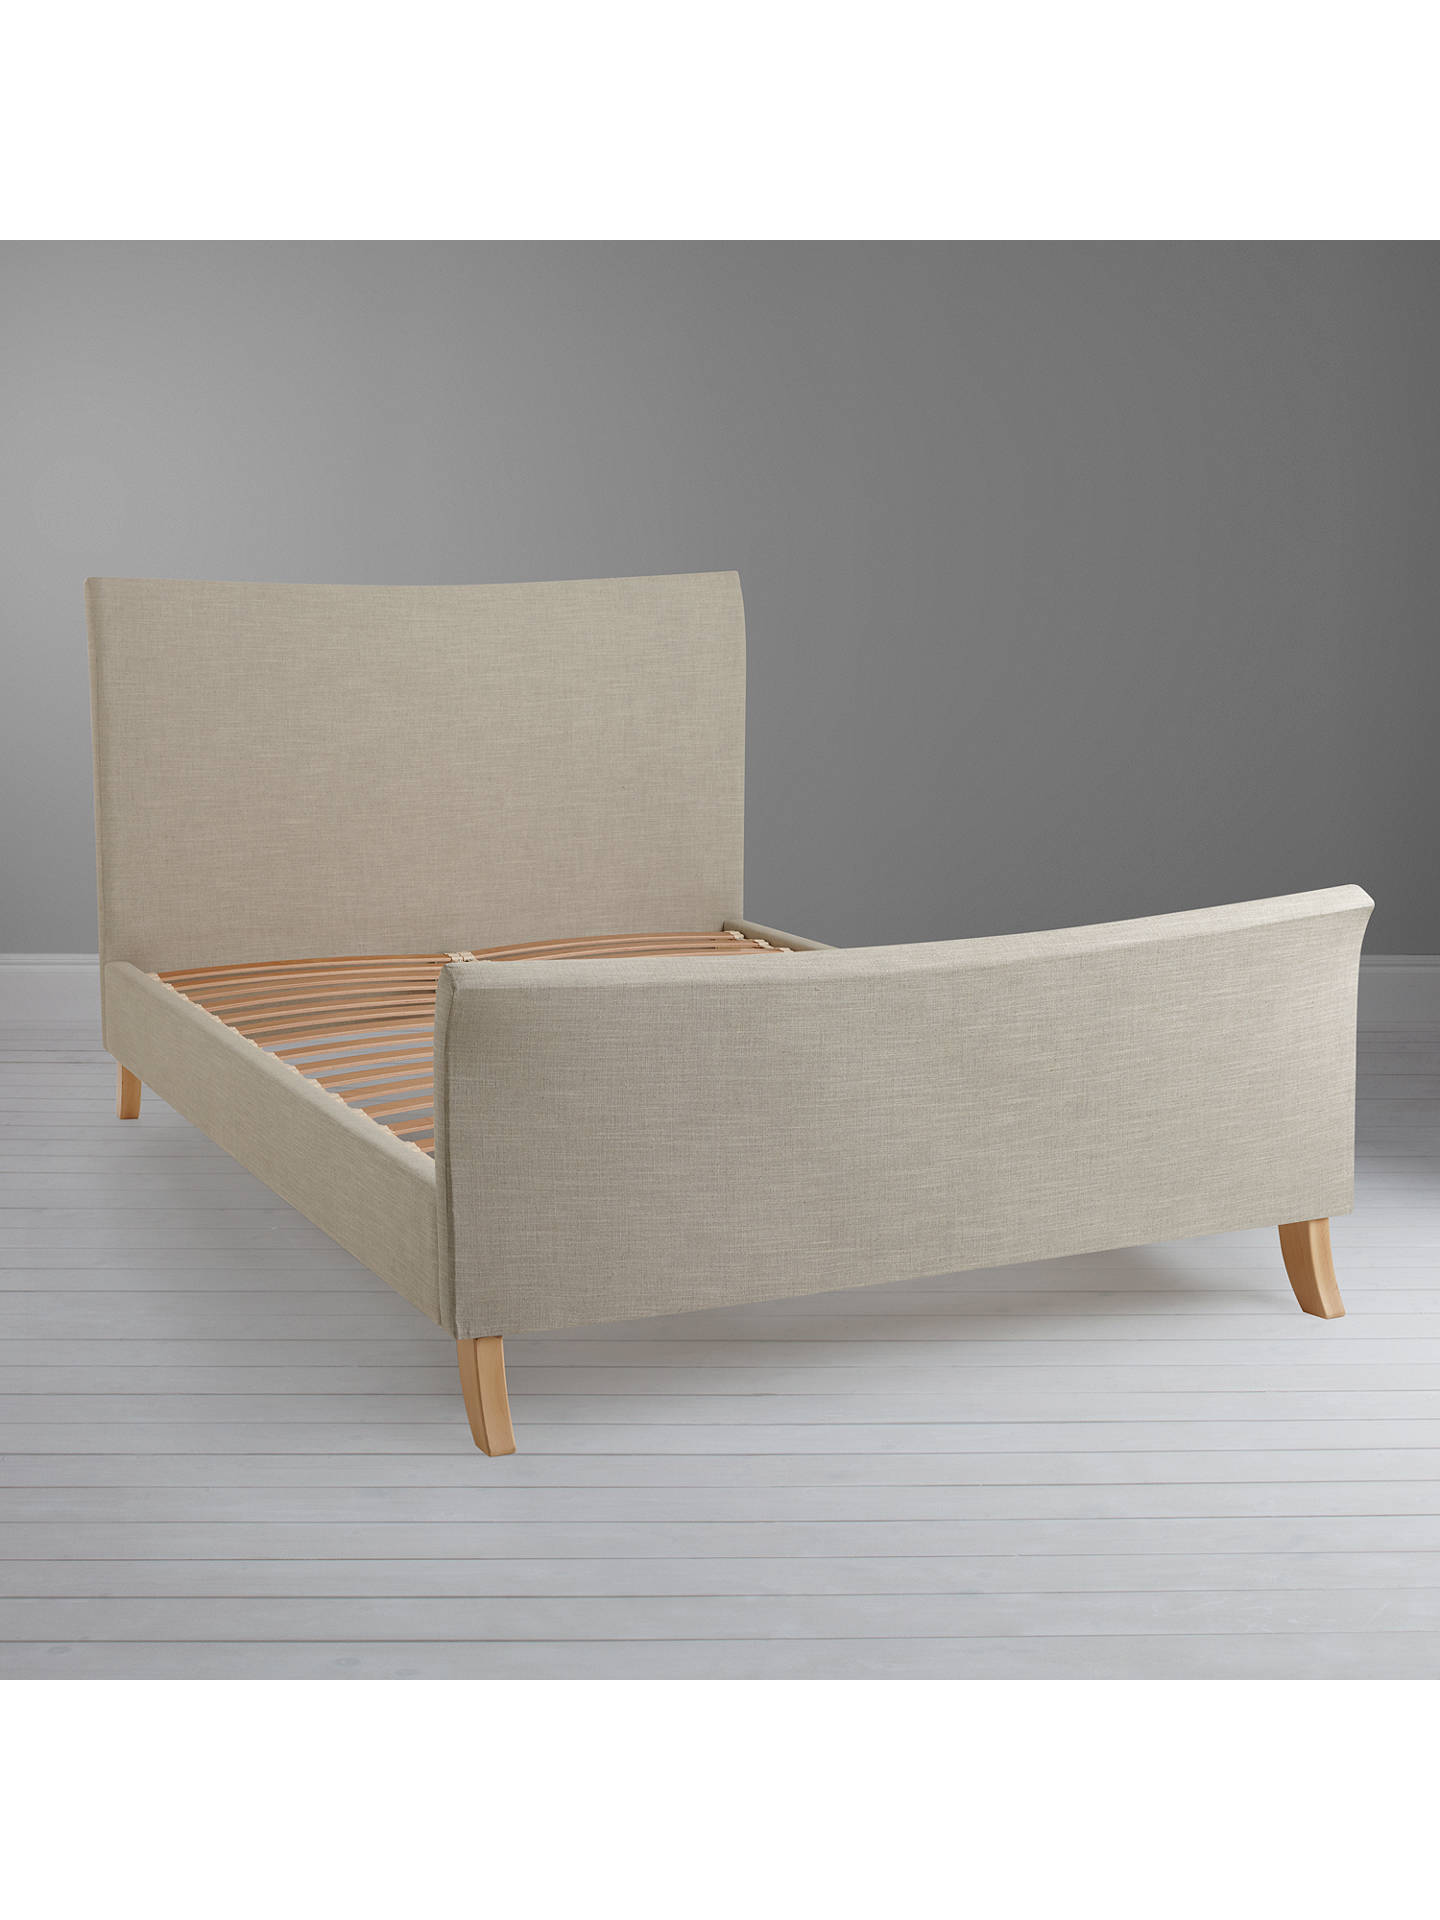 Buy John Lewis & Partners Lincoln High End Bed Frame, King Size, Naomi Linen Online at johnlewis.com